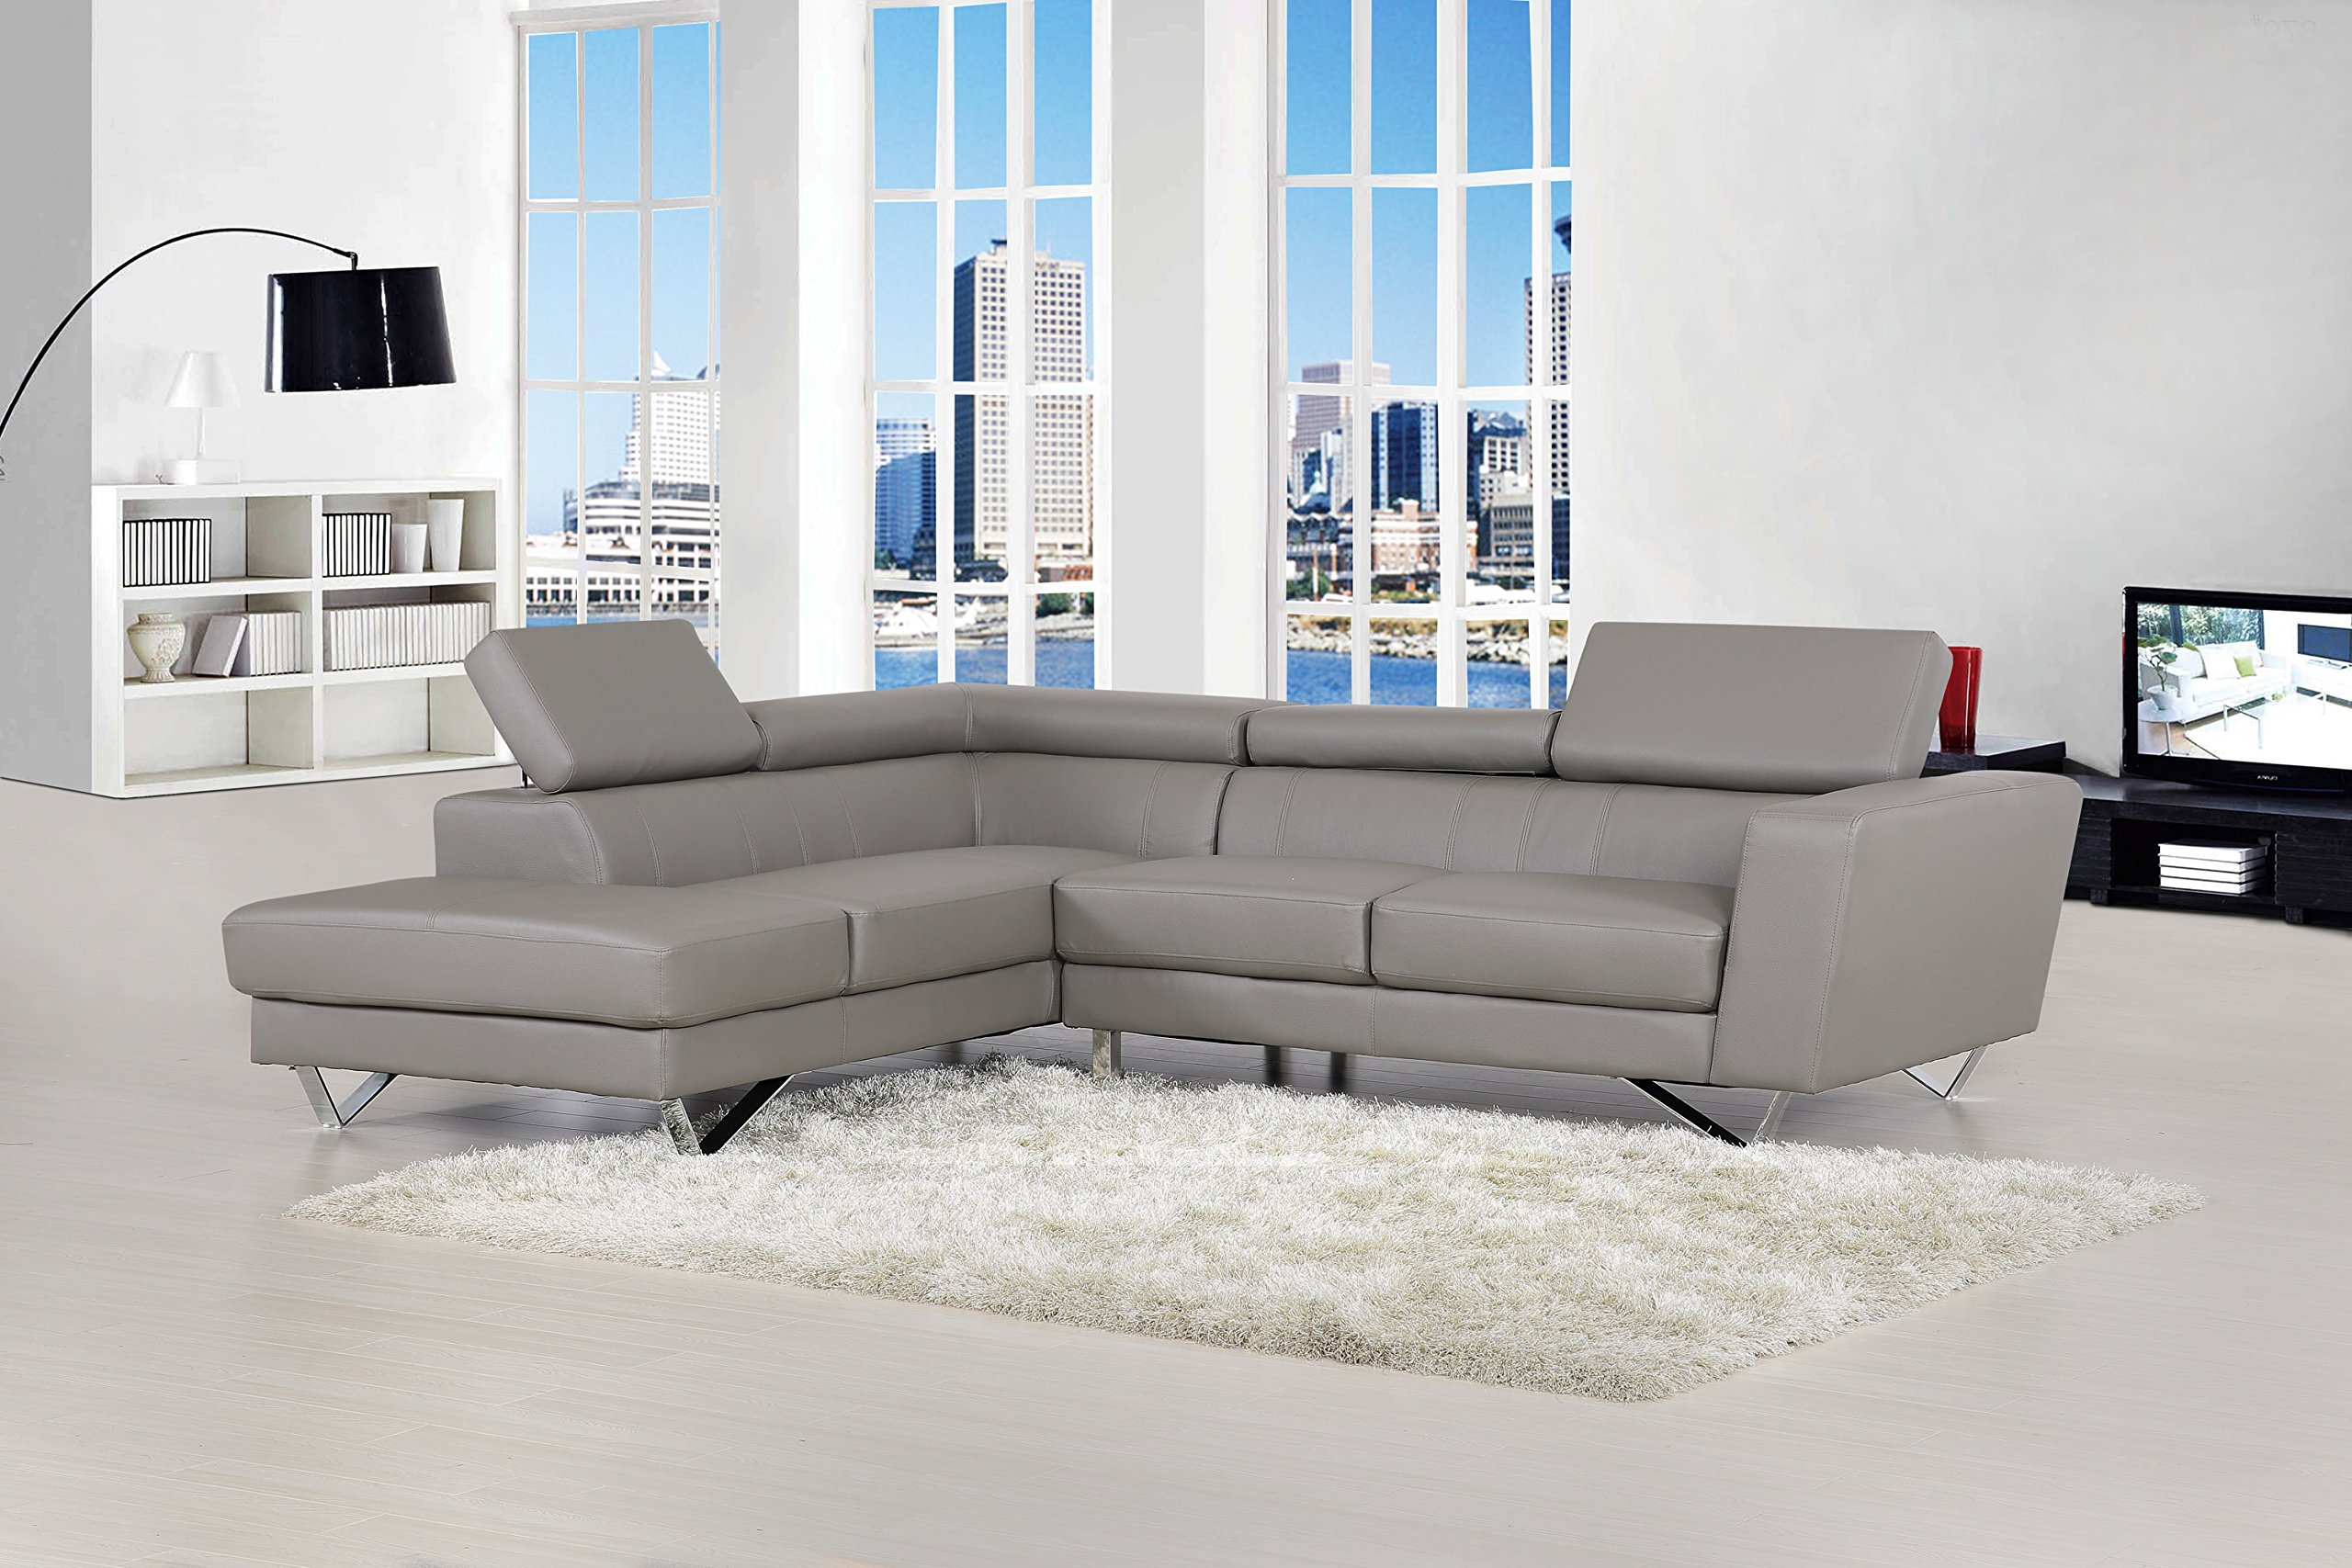 Container Furniture Direct Delia Collection Modern 2 Piece Bonded Leather L-Shaped Left Facing Sectional with Chaise, Gray